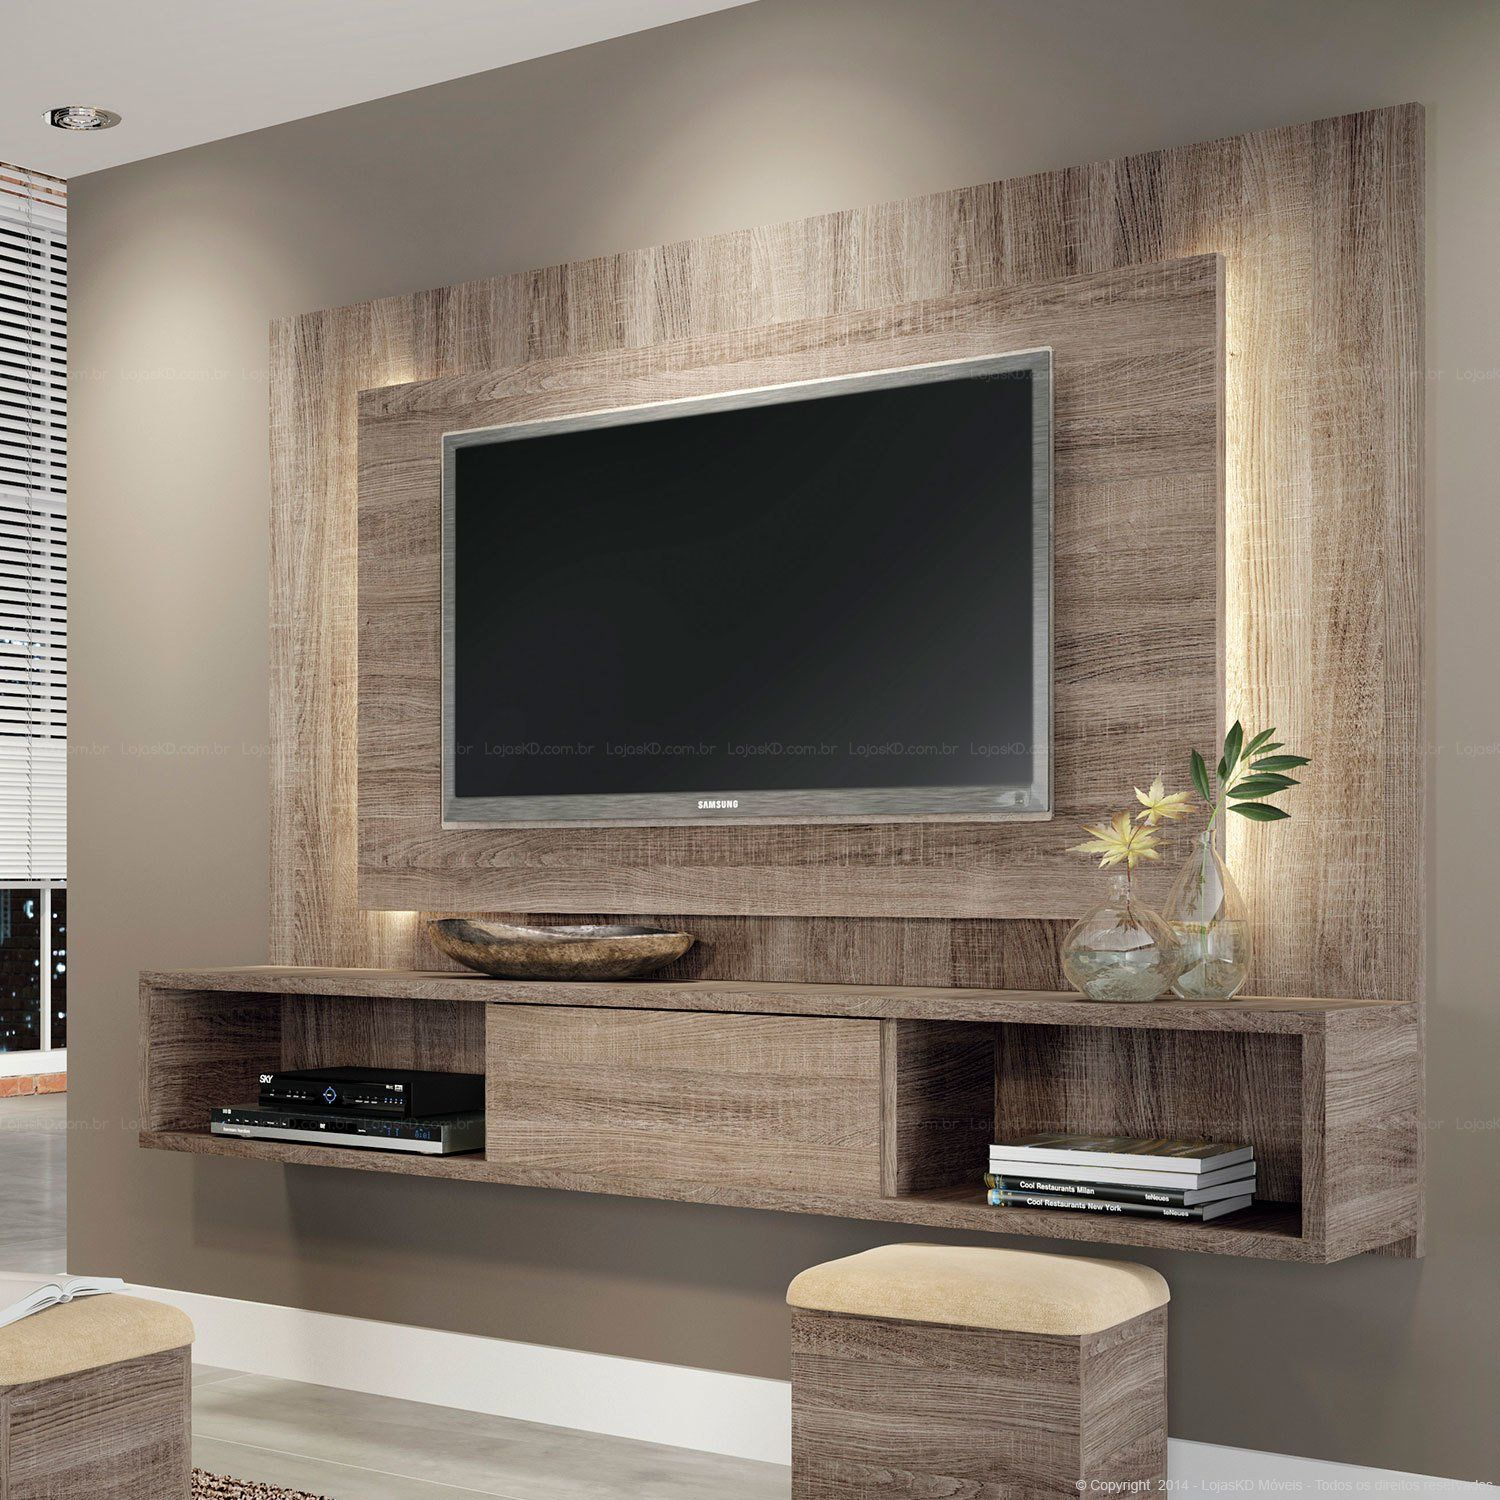 ... Wall Mount Ideas With Cabinet And Design For Your Living Room. Painel  De Tv Sala   Pesquisa Google